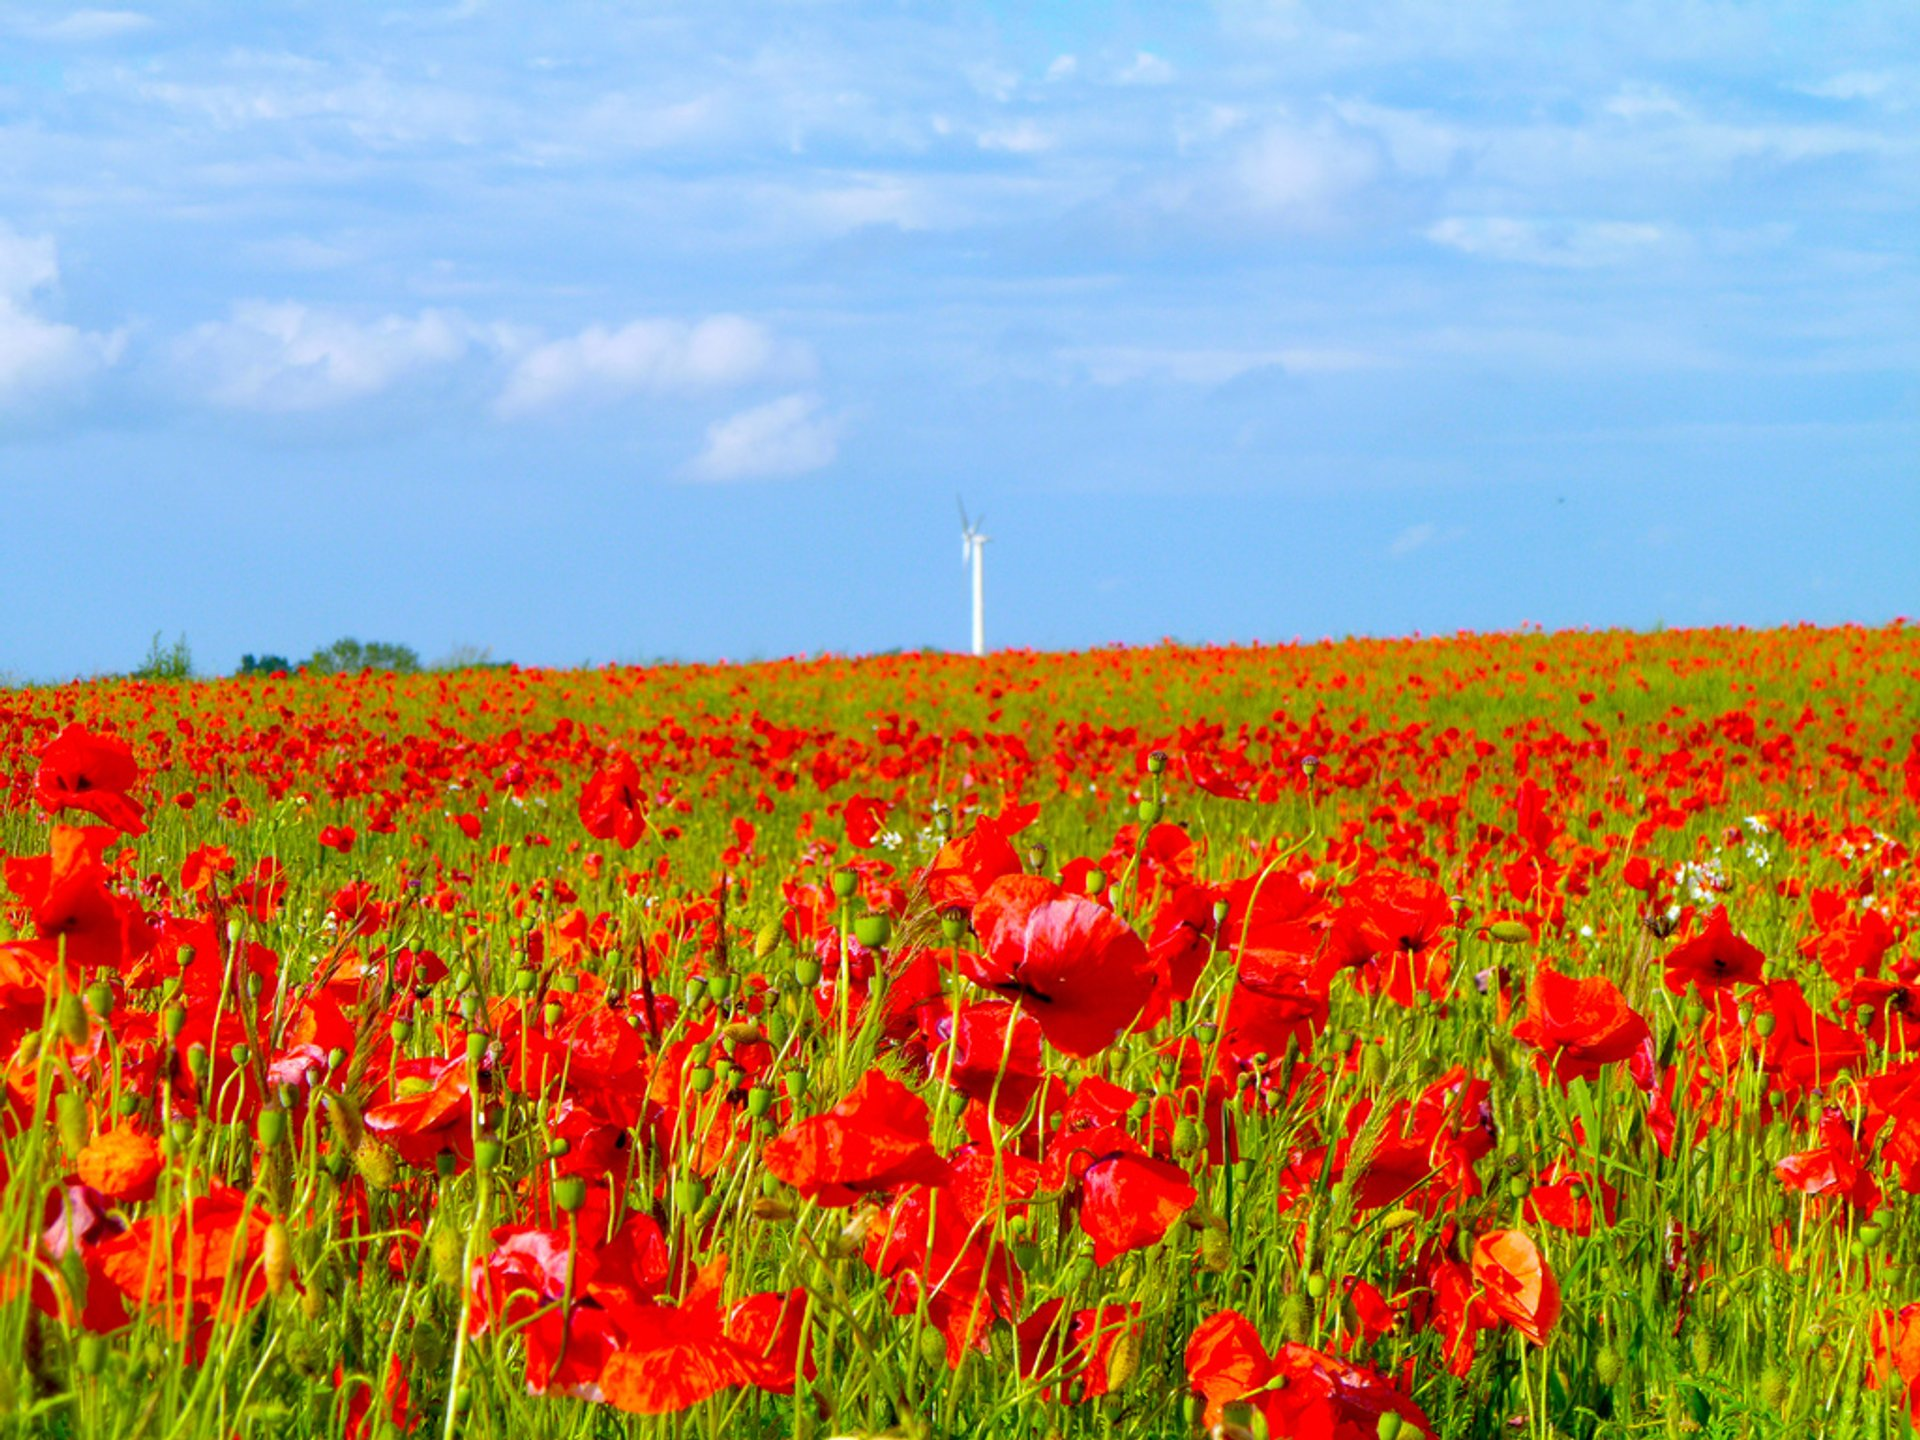 Poppies in Sjaelland, Denmark 2019